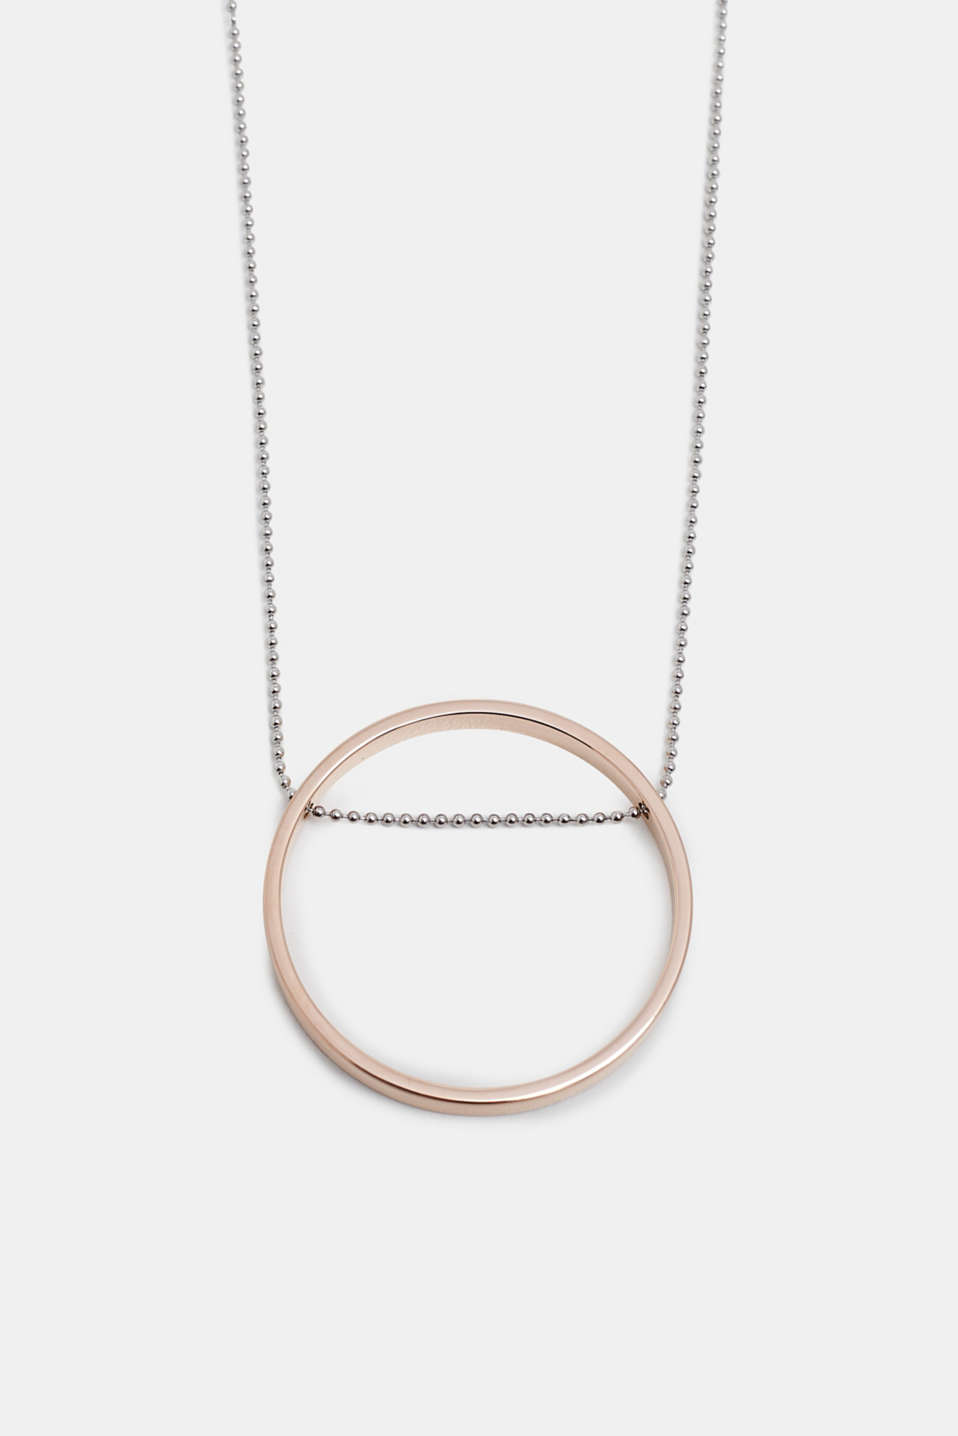 Long necklace with a ring pendant, ROSEGOLD, detail image number 0